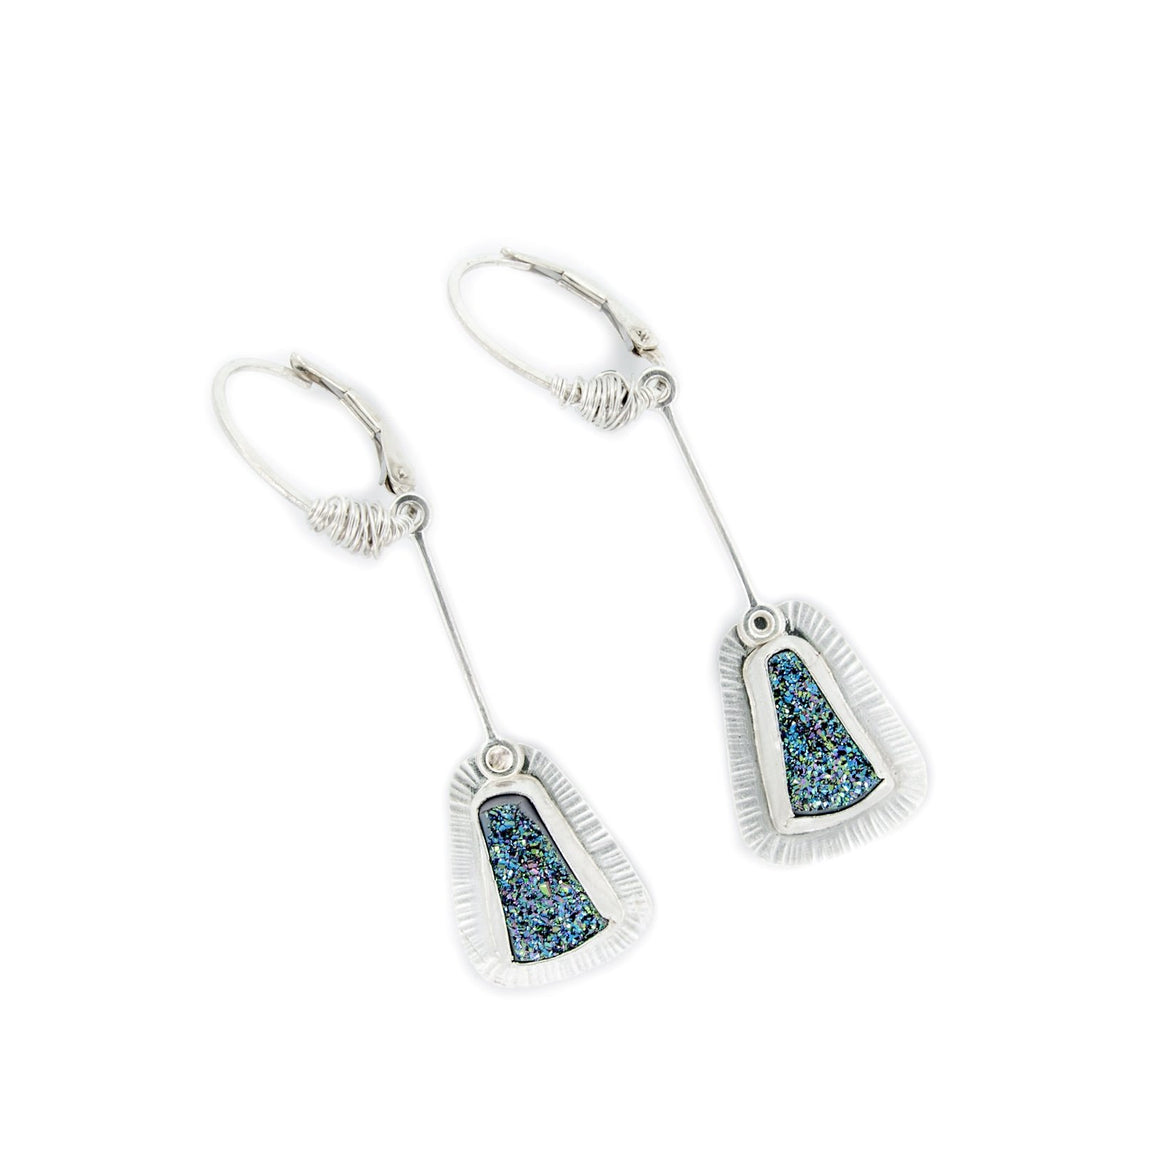 Blue Druze Pendulum Earrings by Original Sin Jewelry